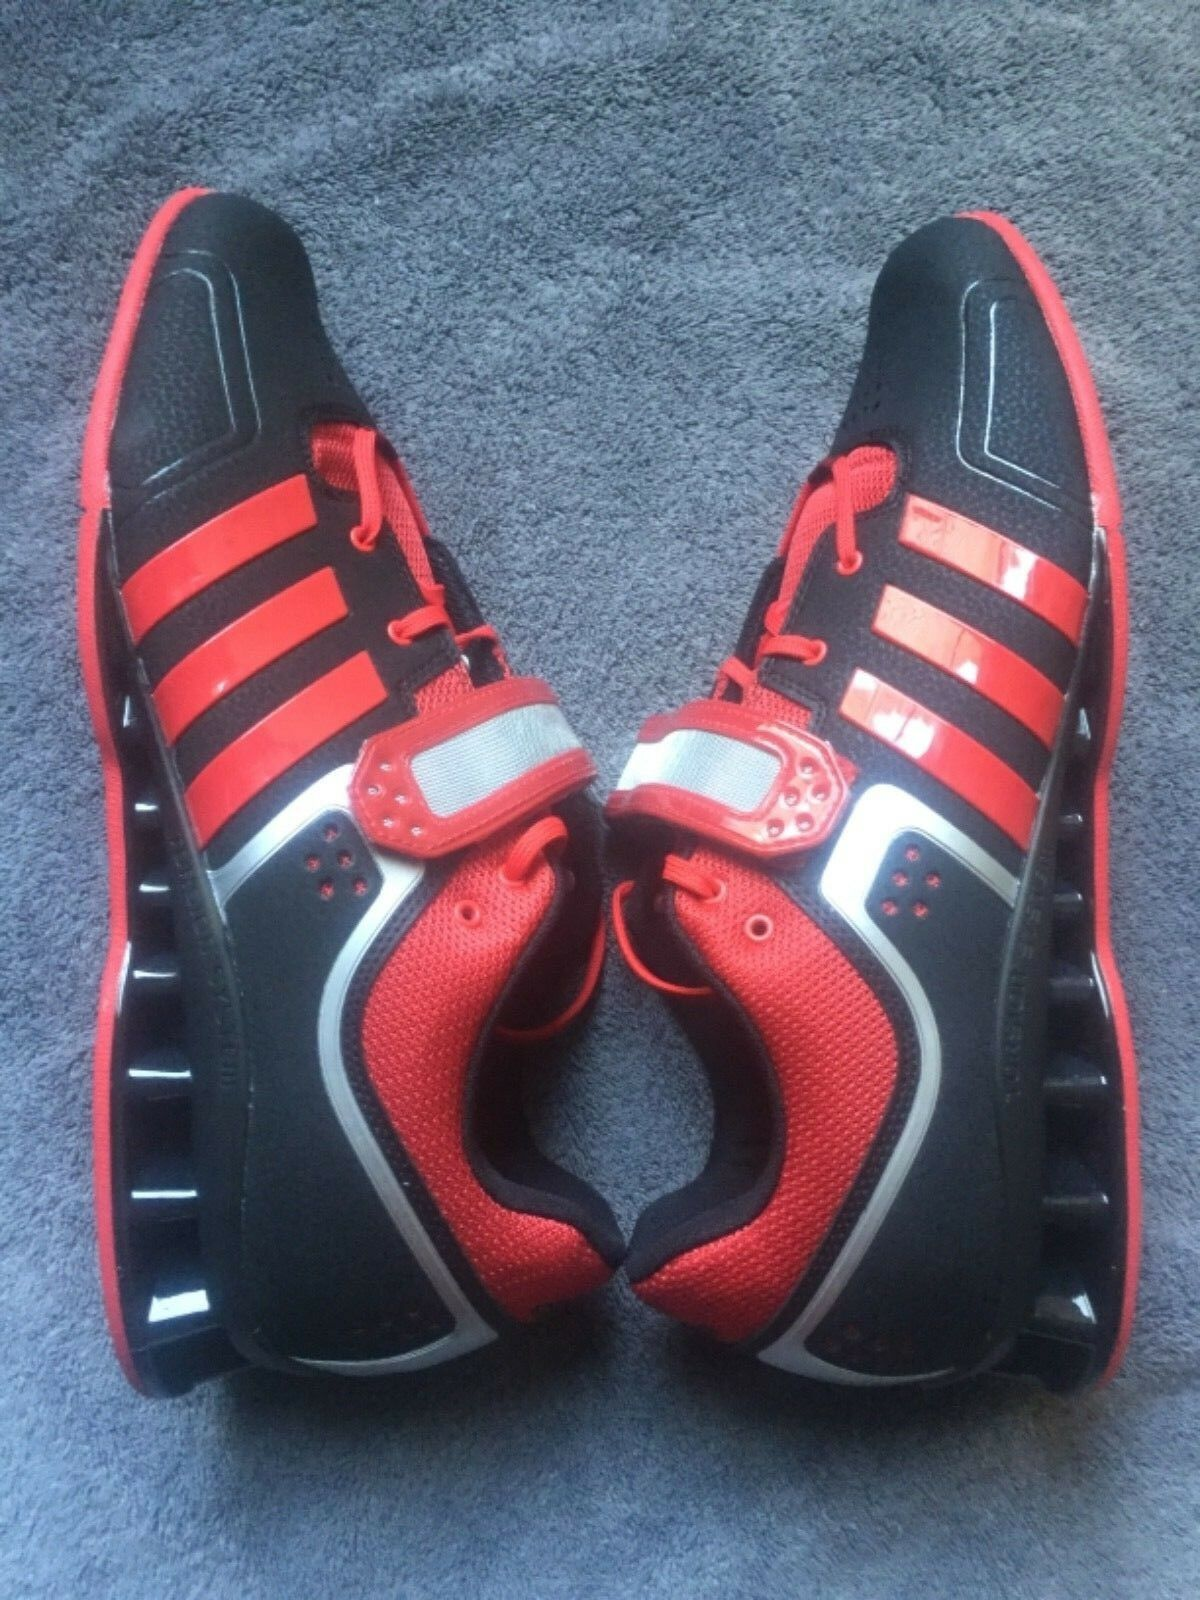 Adidas Adipower Weightlift (M21865) Weightlifting Shoes Men's Size: 15 MSRP 200